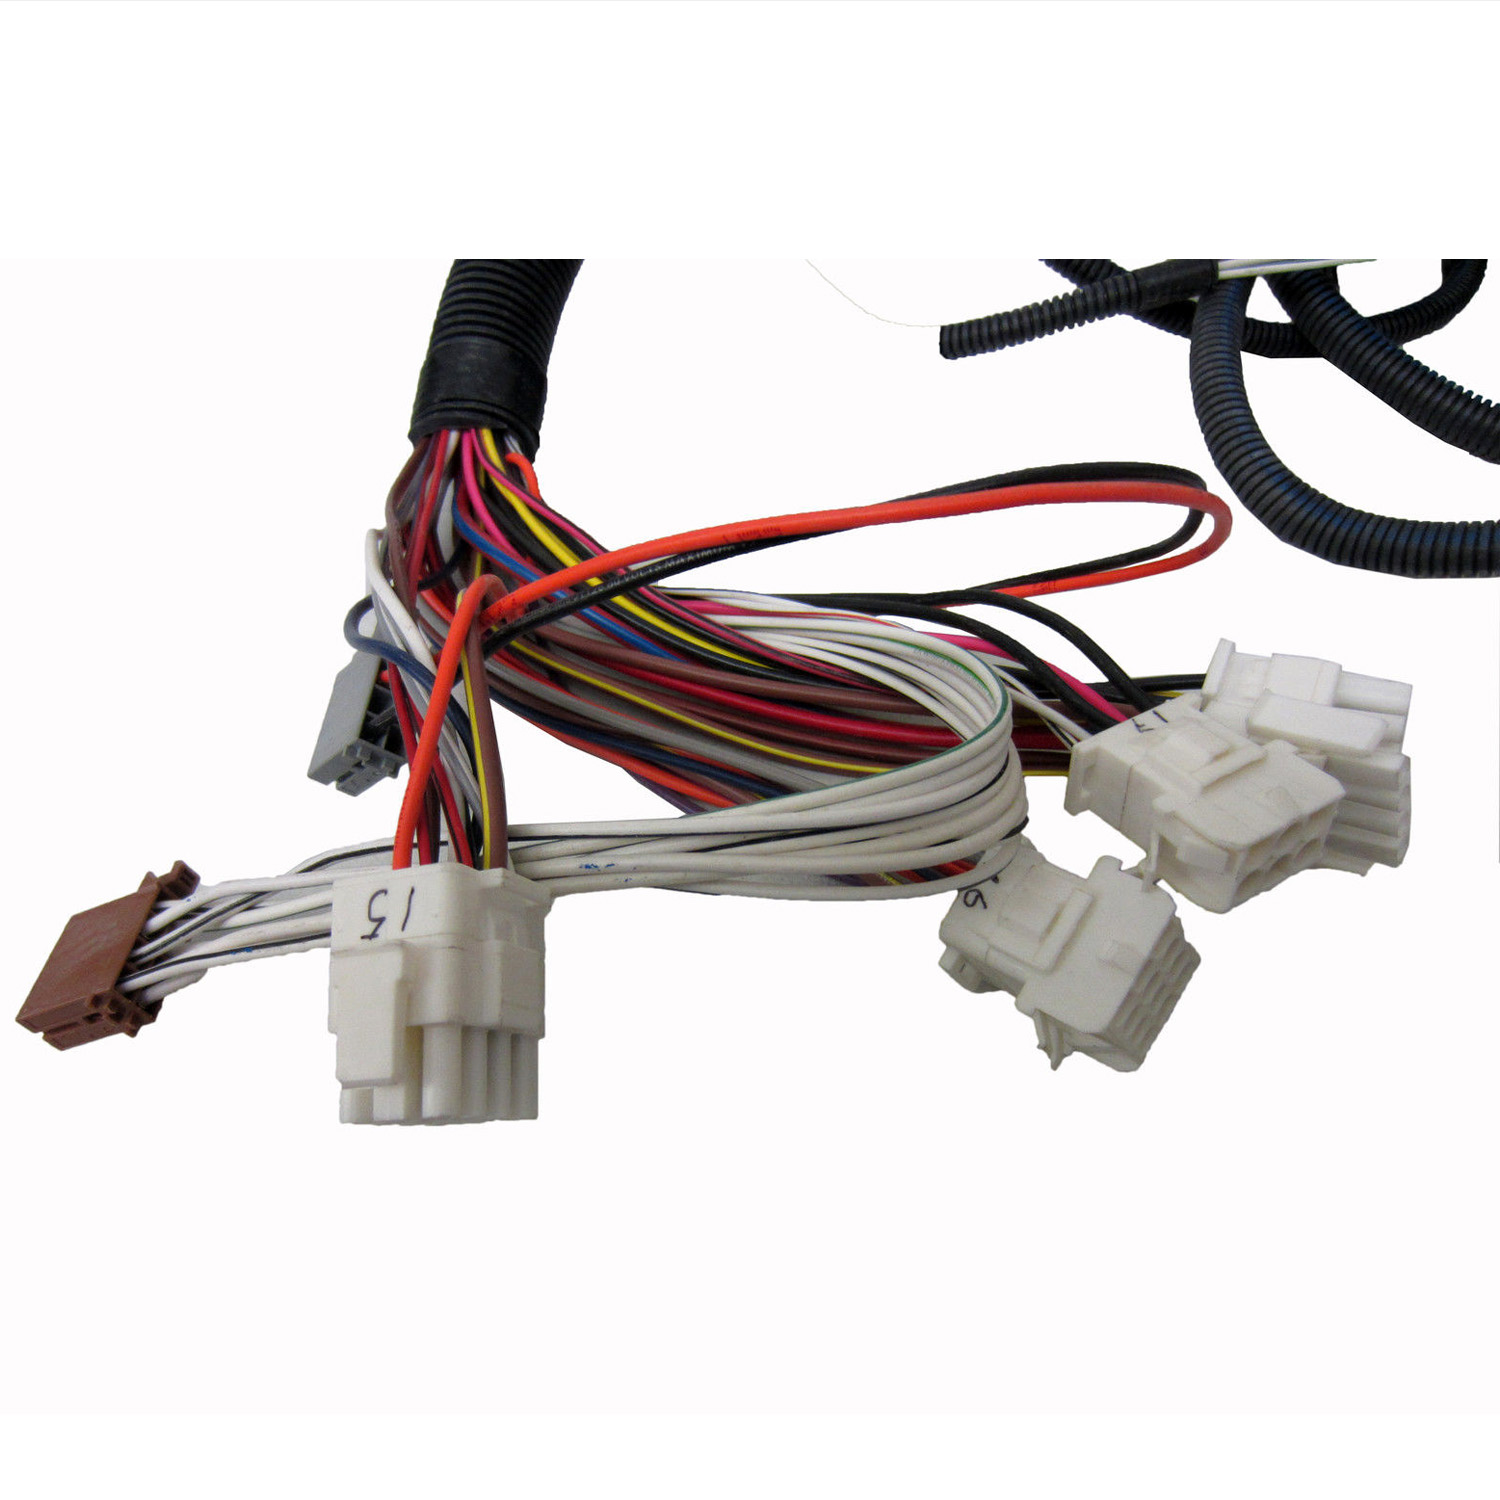 ... Picture 4 of 4. Sea-Doo New OEM Sport Boat Accessories Wiring Harness  ...